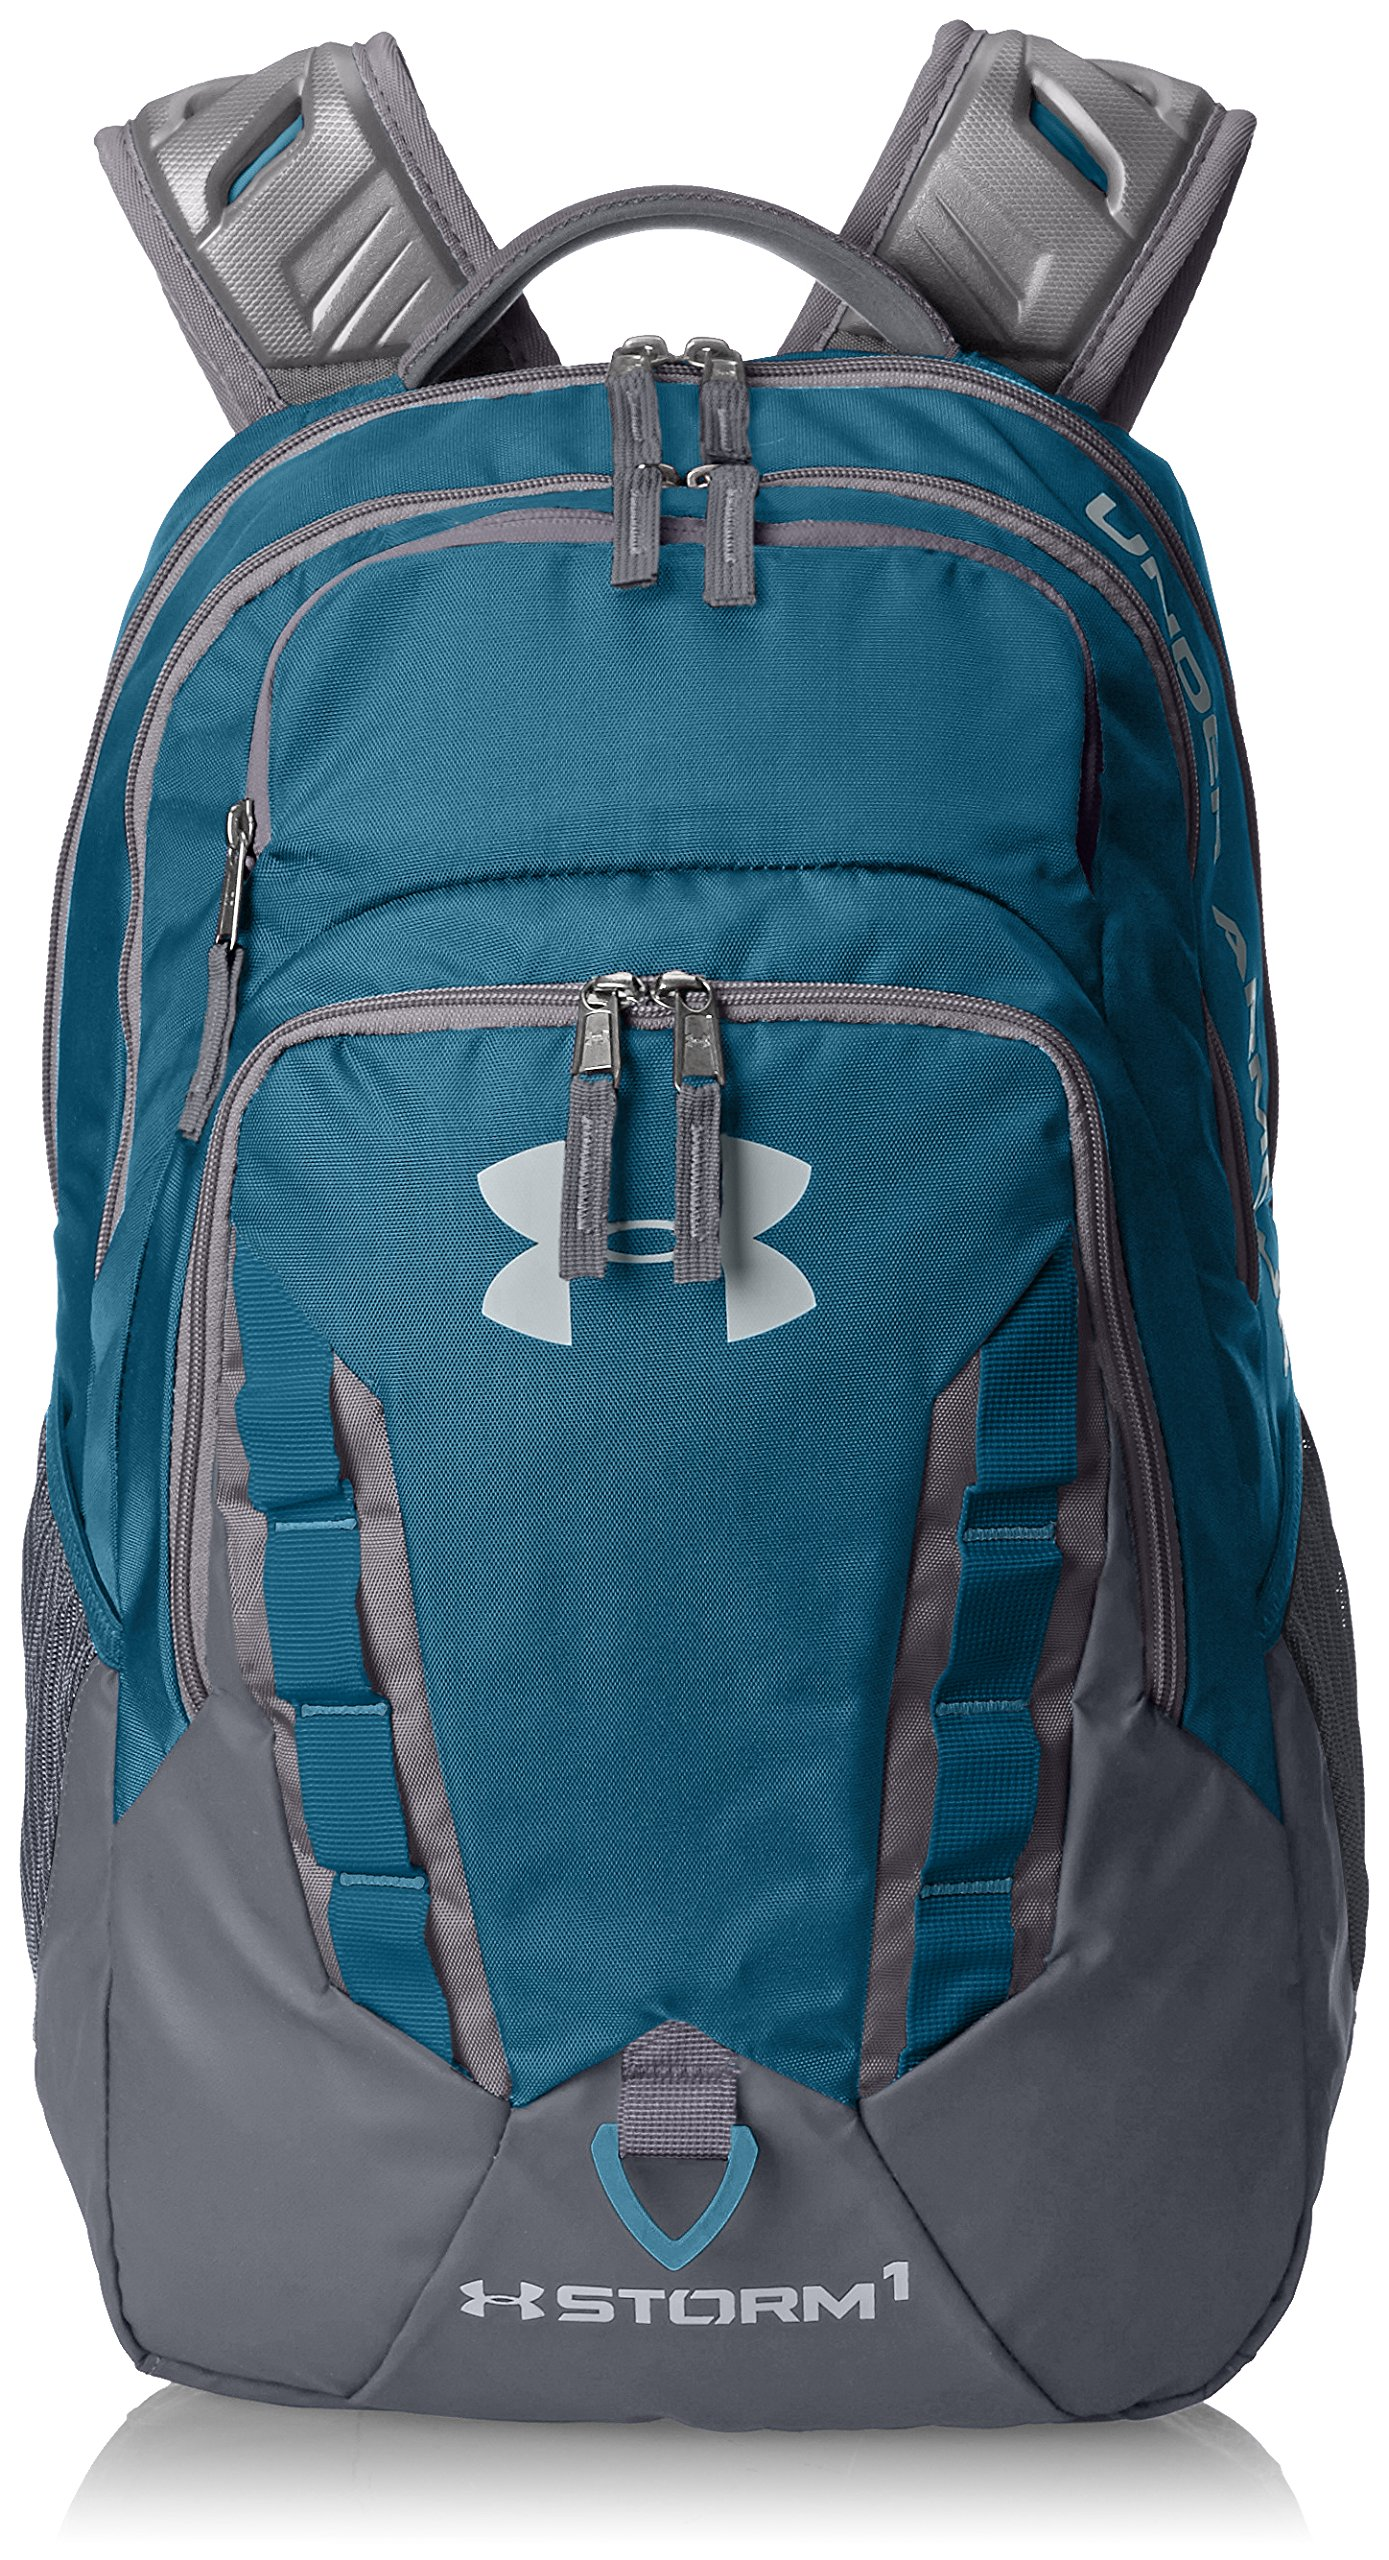 Under Armour Storm Recruit Backpack,Bayou Blue /Overcast Gray, One Size by Under Armour